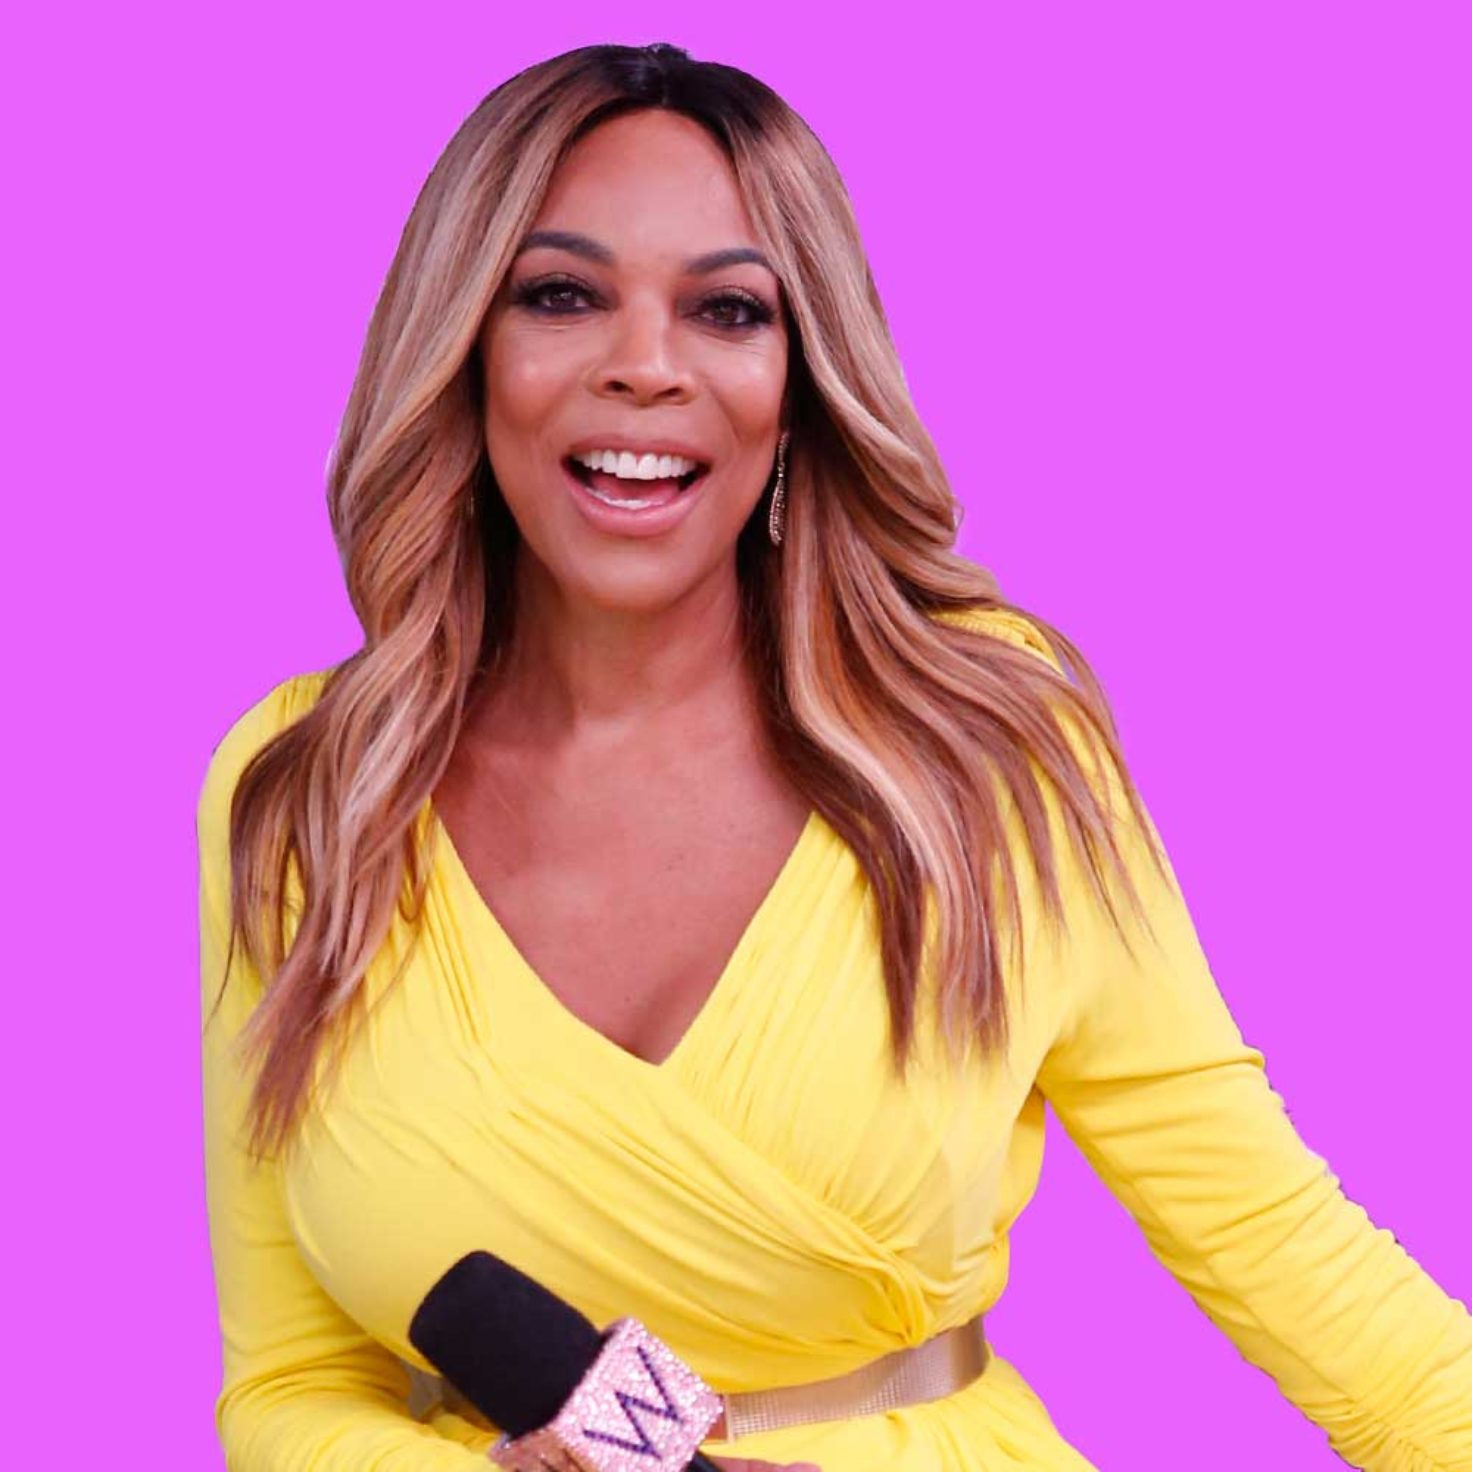 Wendy Williams Goes Up On Stage With Blac Chyna Showing Off A Lot Of Skin - See The Video